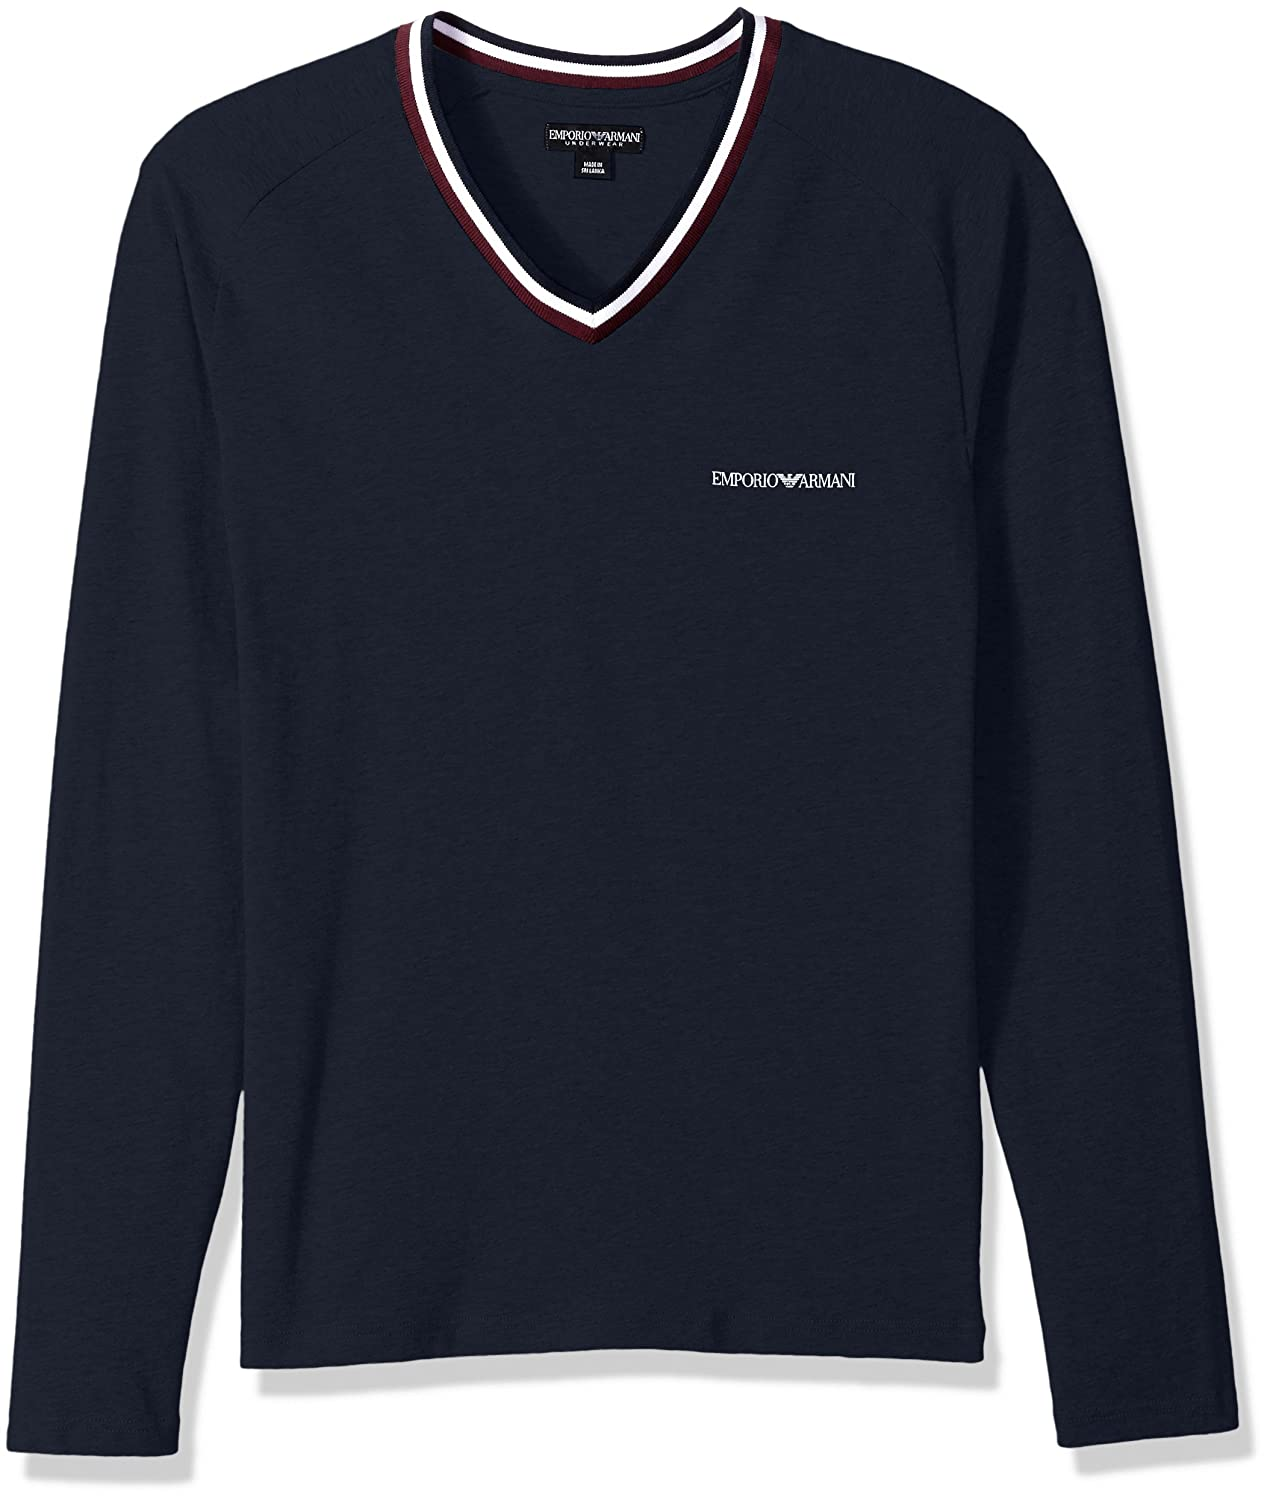 Emporio Armani Mens Standard Rugby Player L/S Vneck T-Shirt